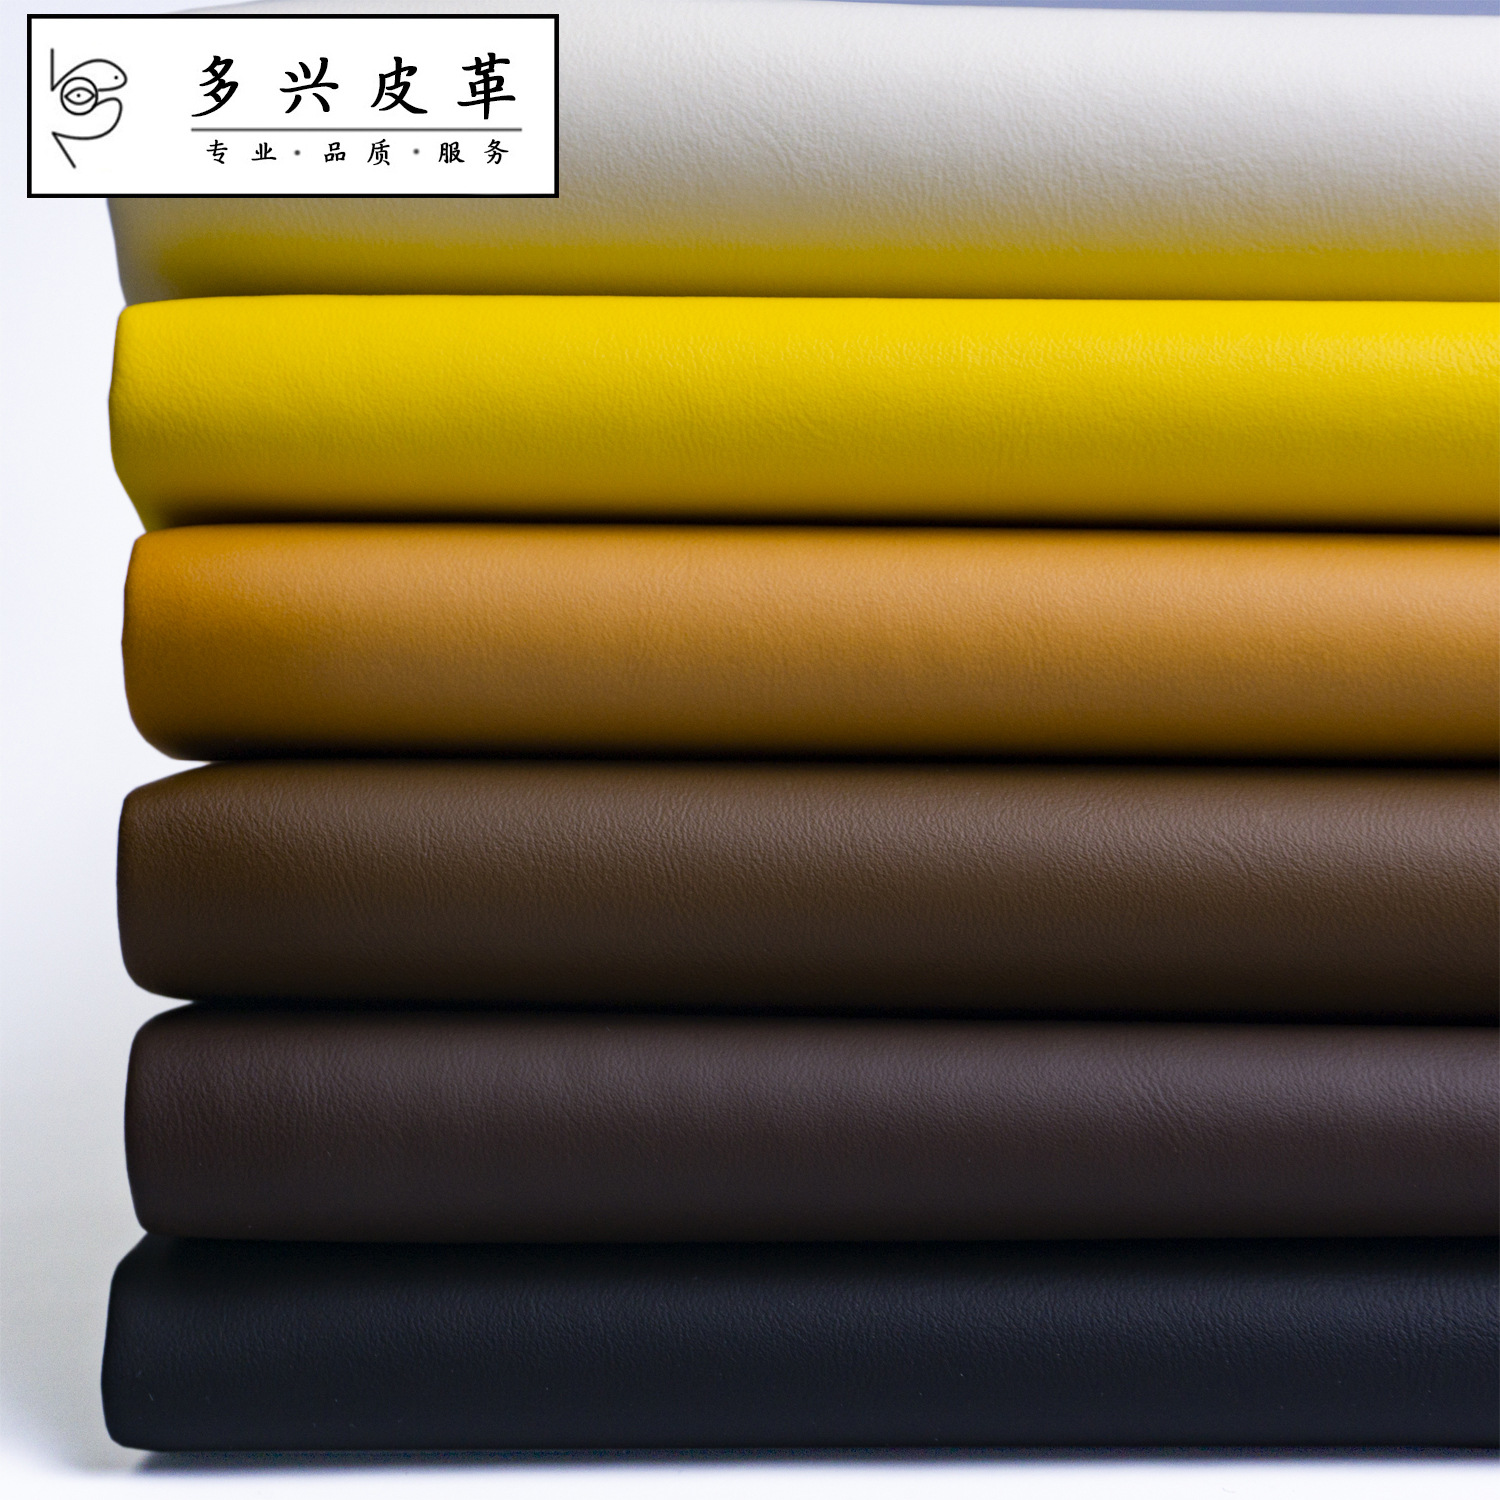 Variety PU leather Thickness 0.7mm Width 137cm Origin Dongguan The main purpose Shoes, gloves, lug